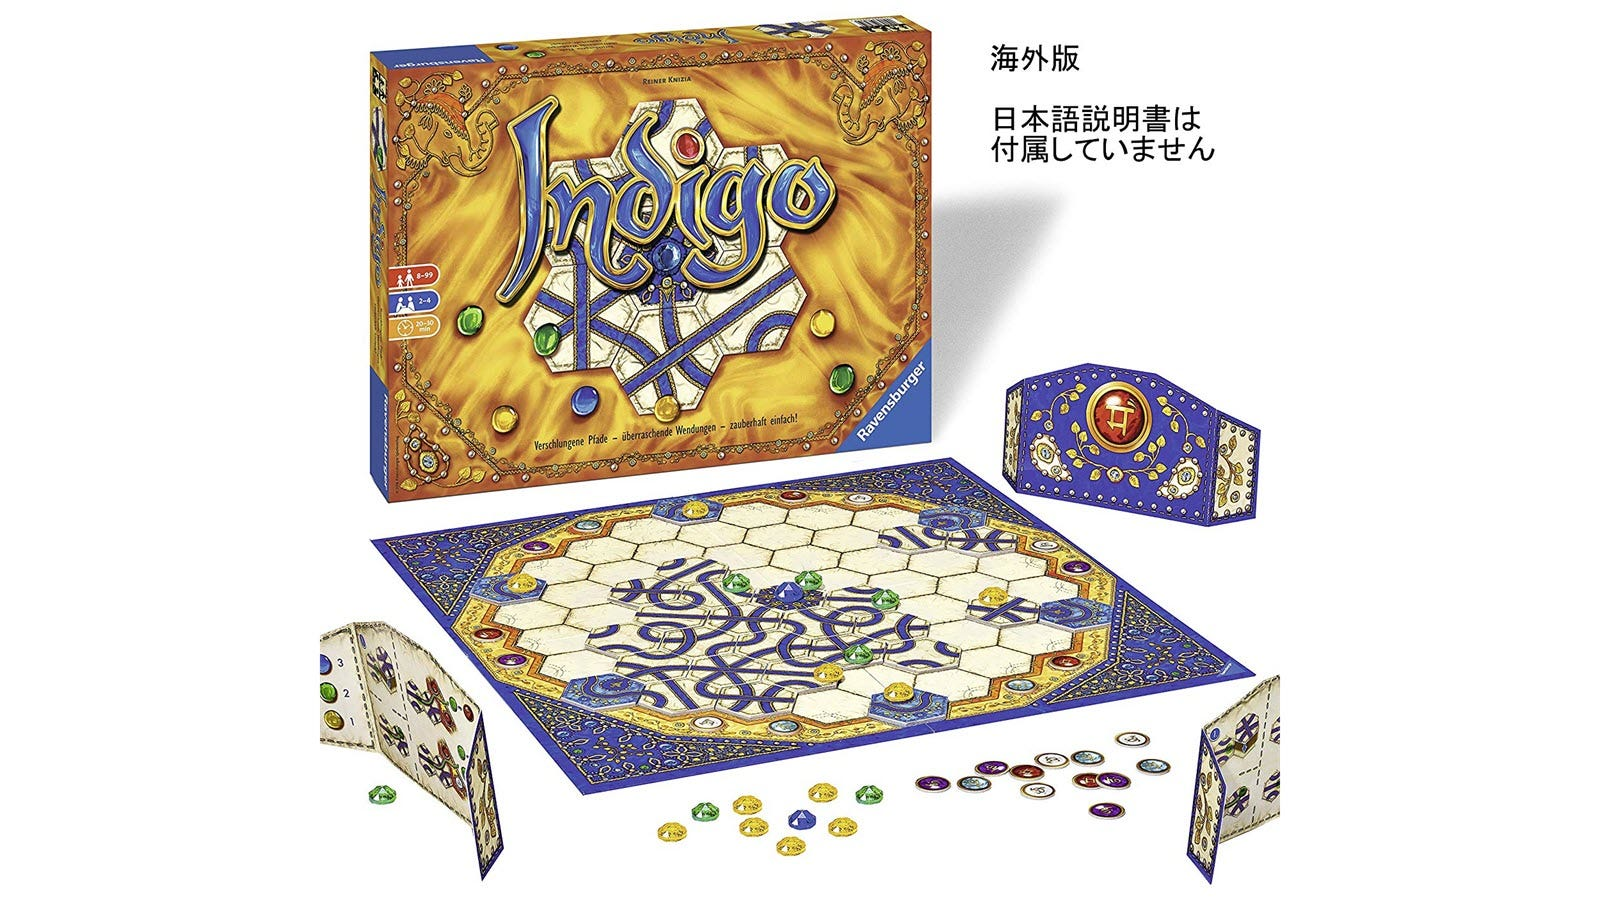 The Indigo board game box, and the gem pieces lying next to the open game board.